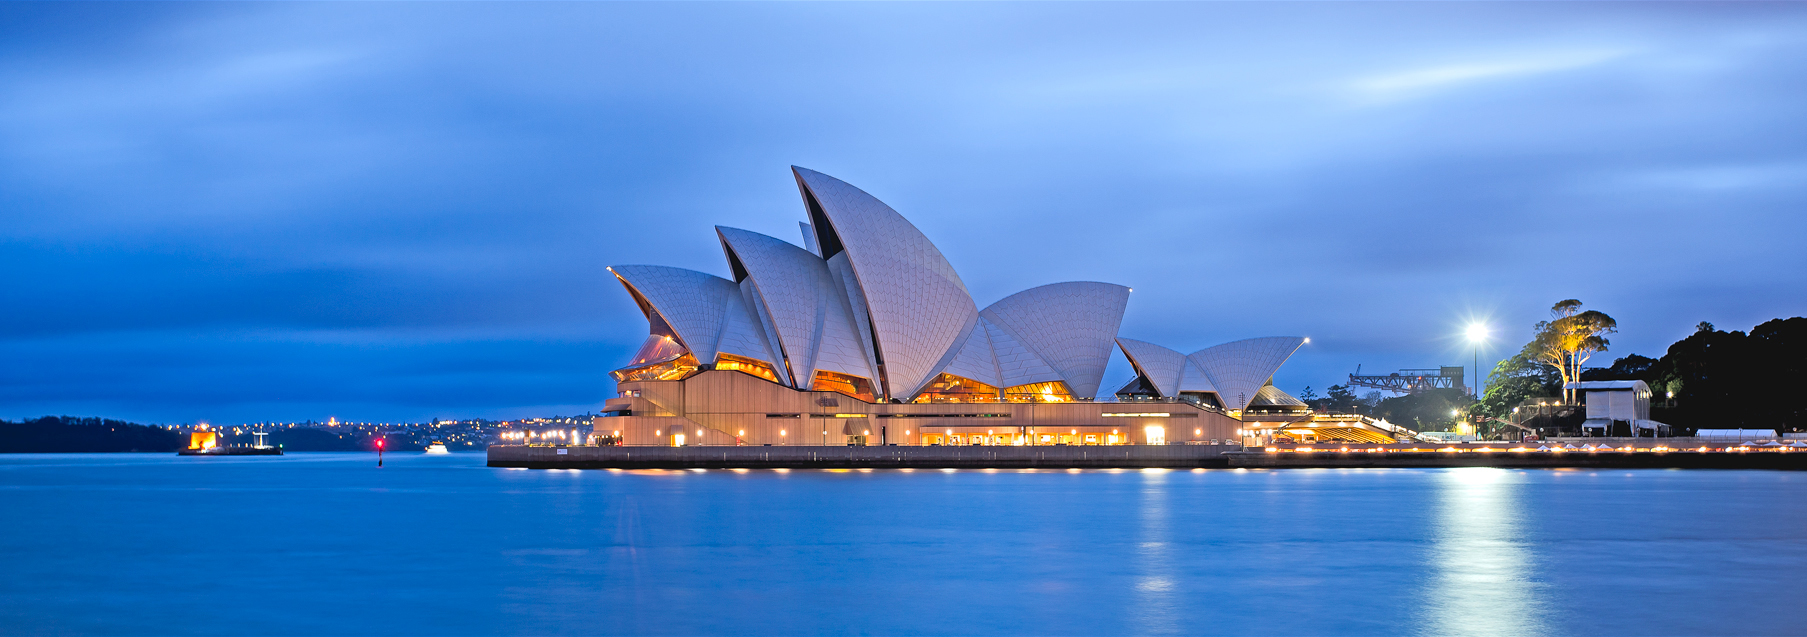 Seeking project management inspiration from the Sydney Opera House